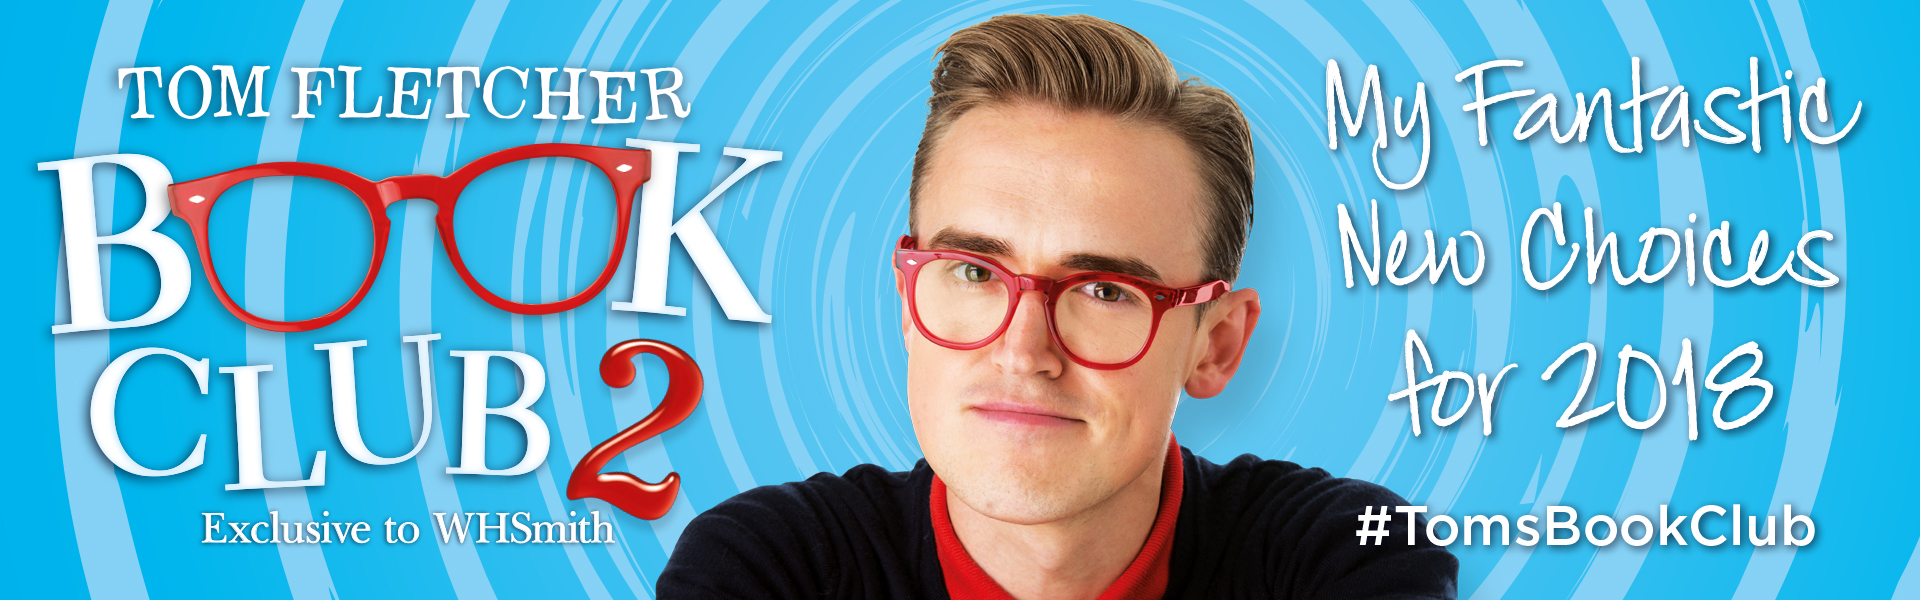 The Tom Fletcher Book Club 2018 Exclusive to WHSmith